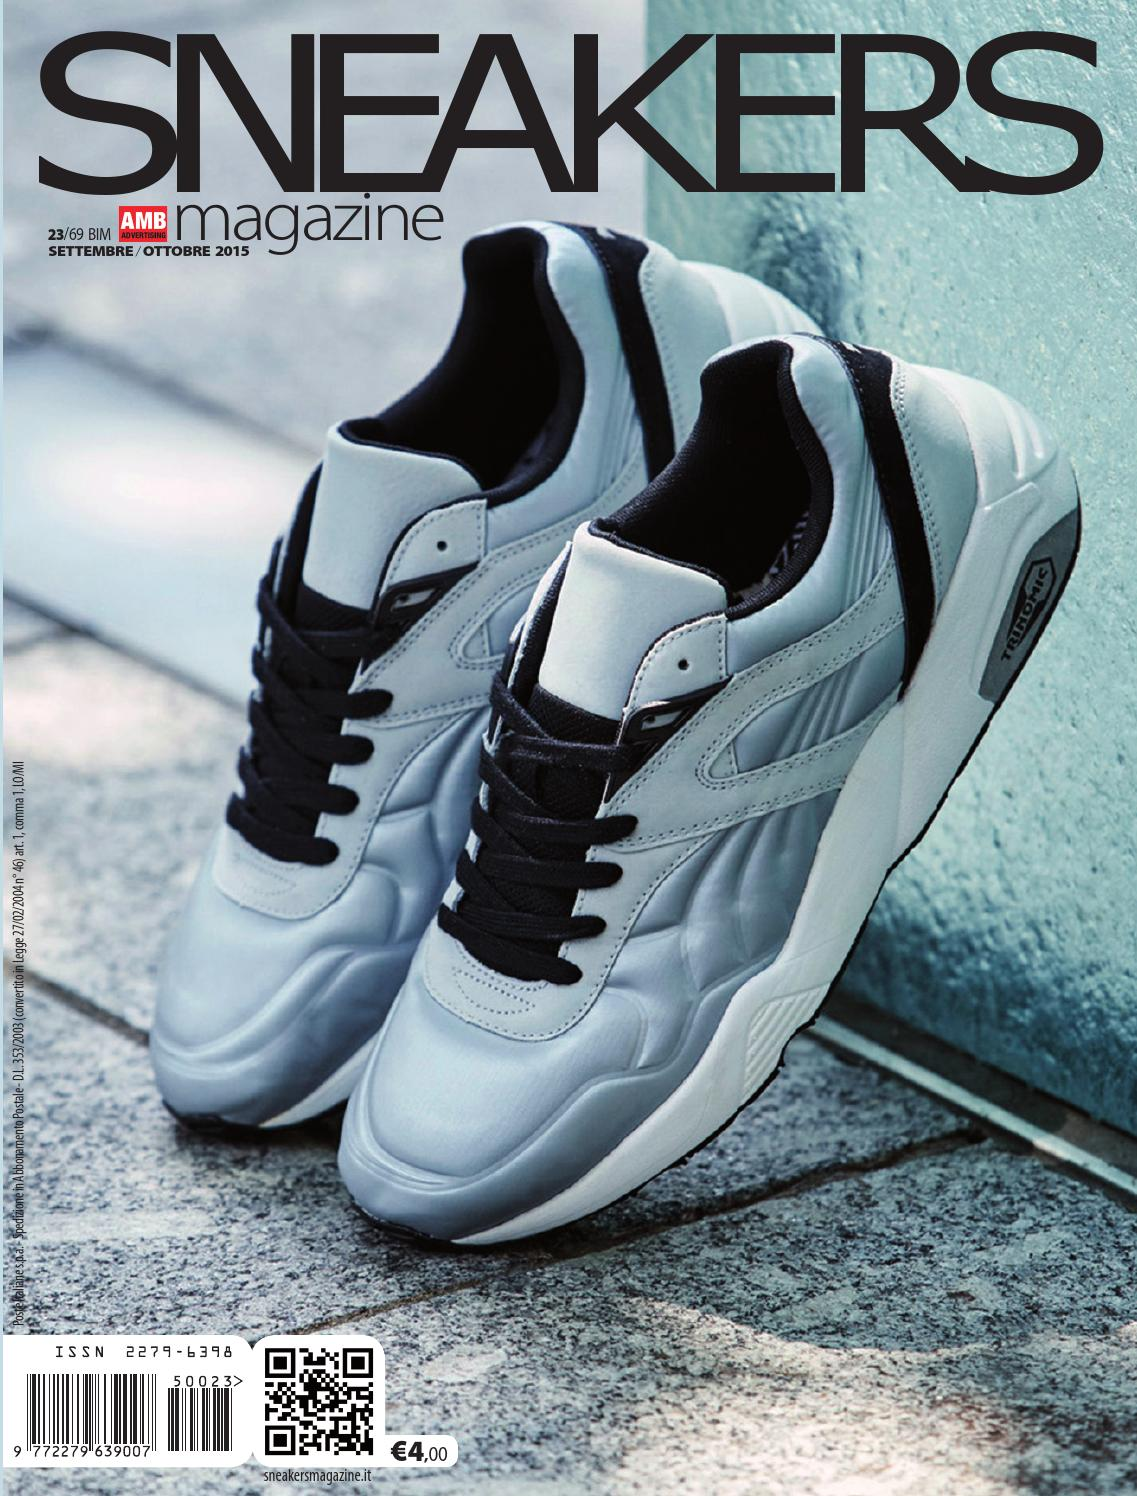 SNEAKERS magazine Issue 69 – Digital Edition by Sneakers Magazine - issuu ee3e3836580